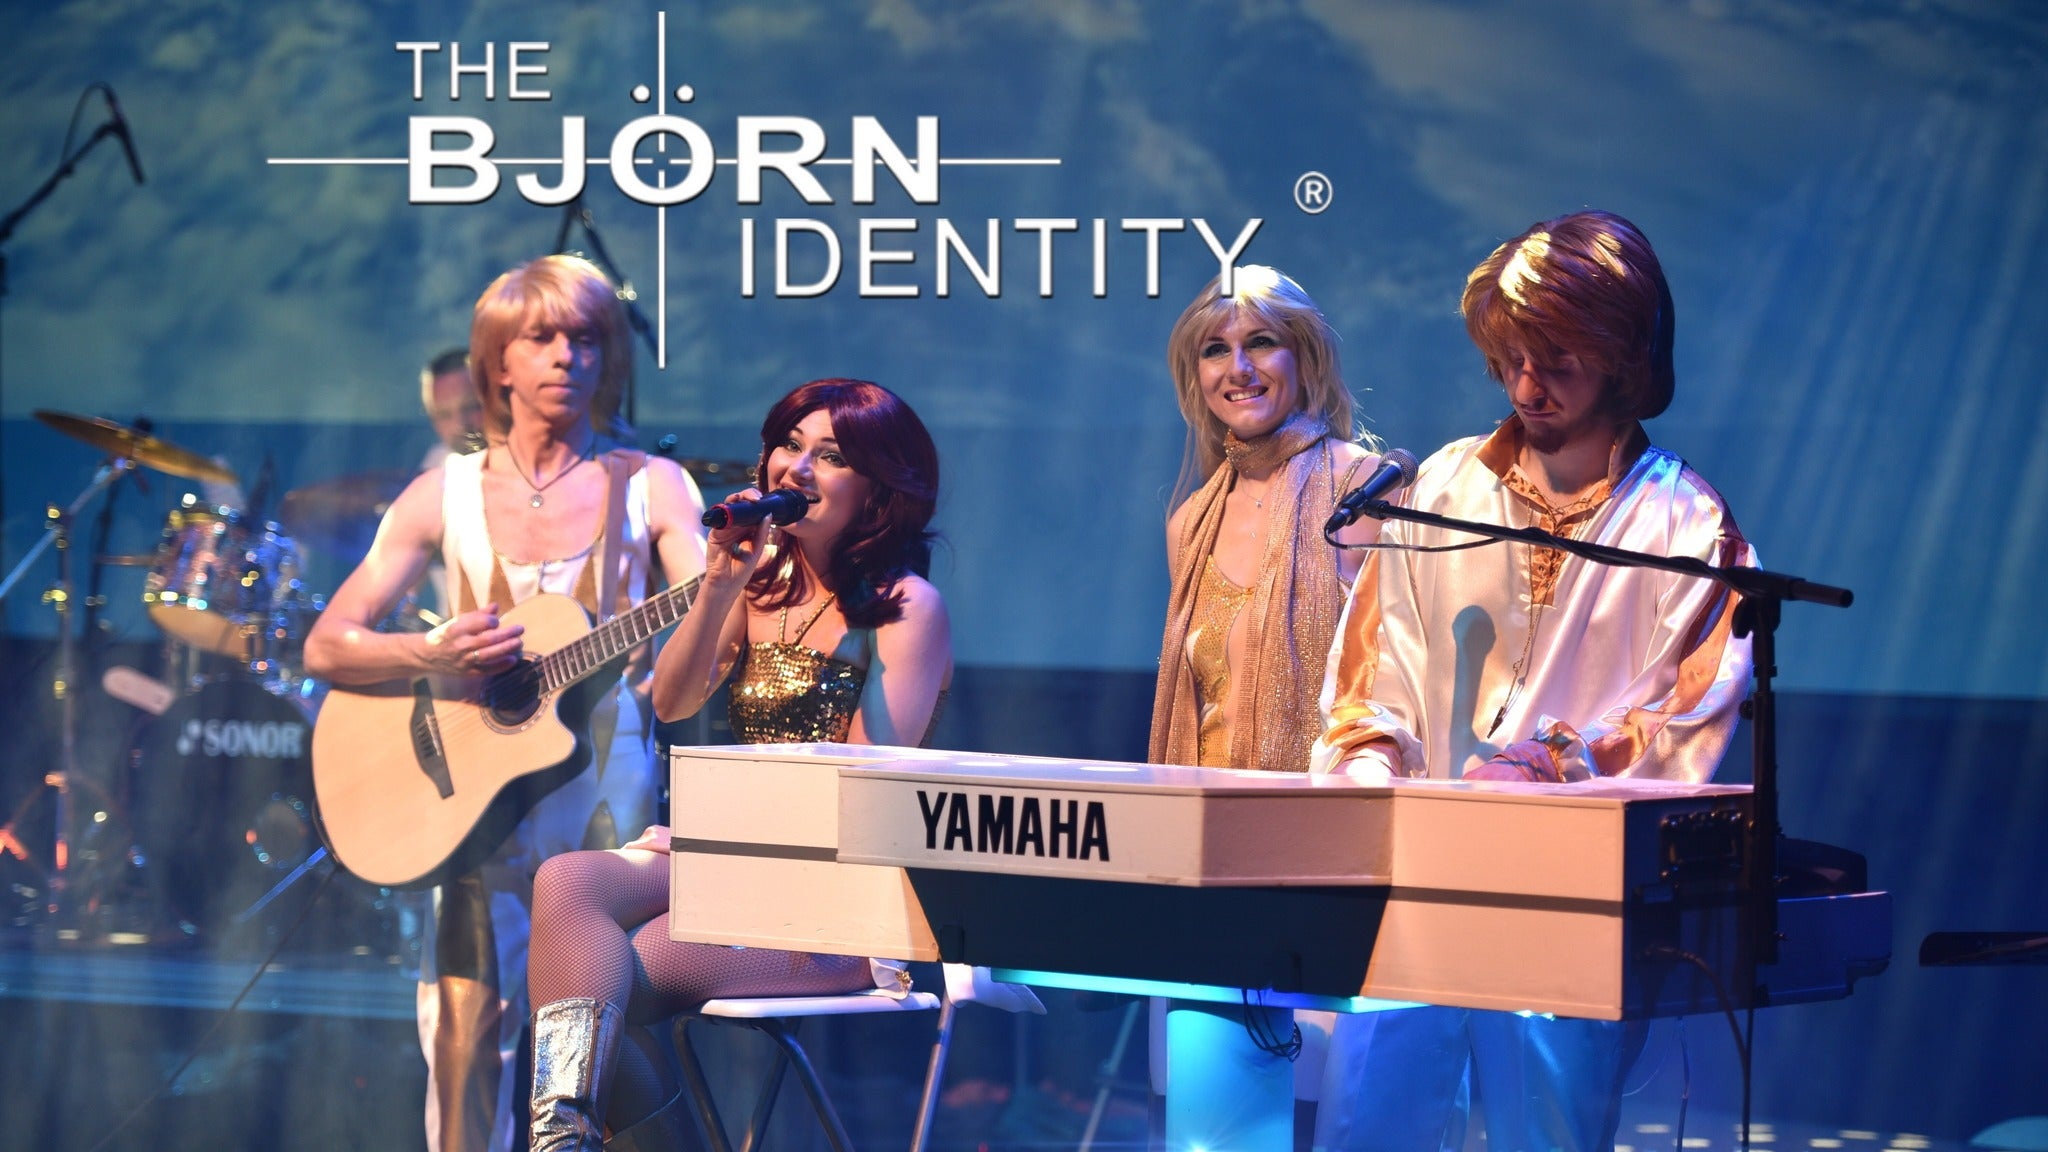 Abba - Starring the Bjorn Identity tickets (Copyright © Ticketmaster)